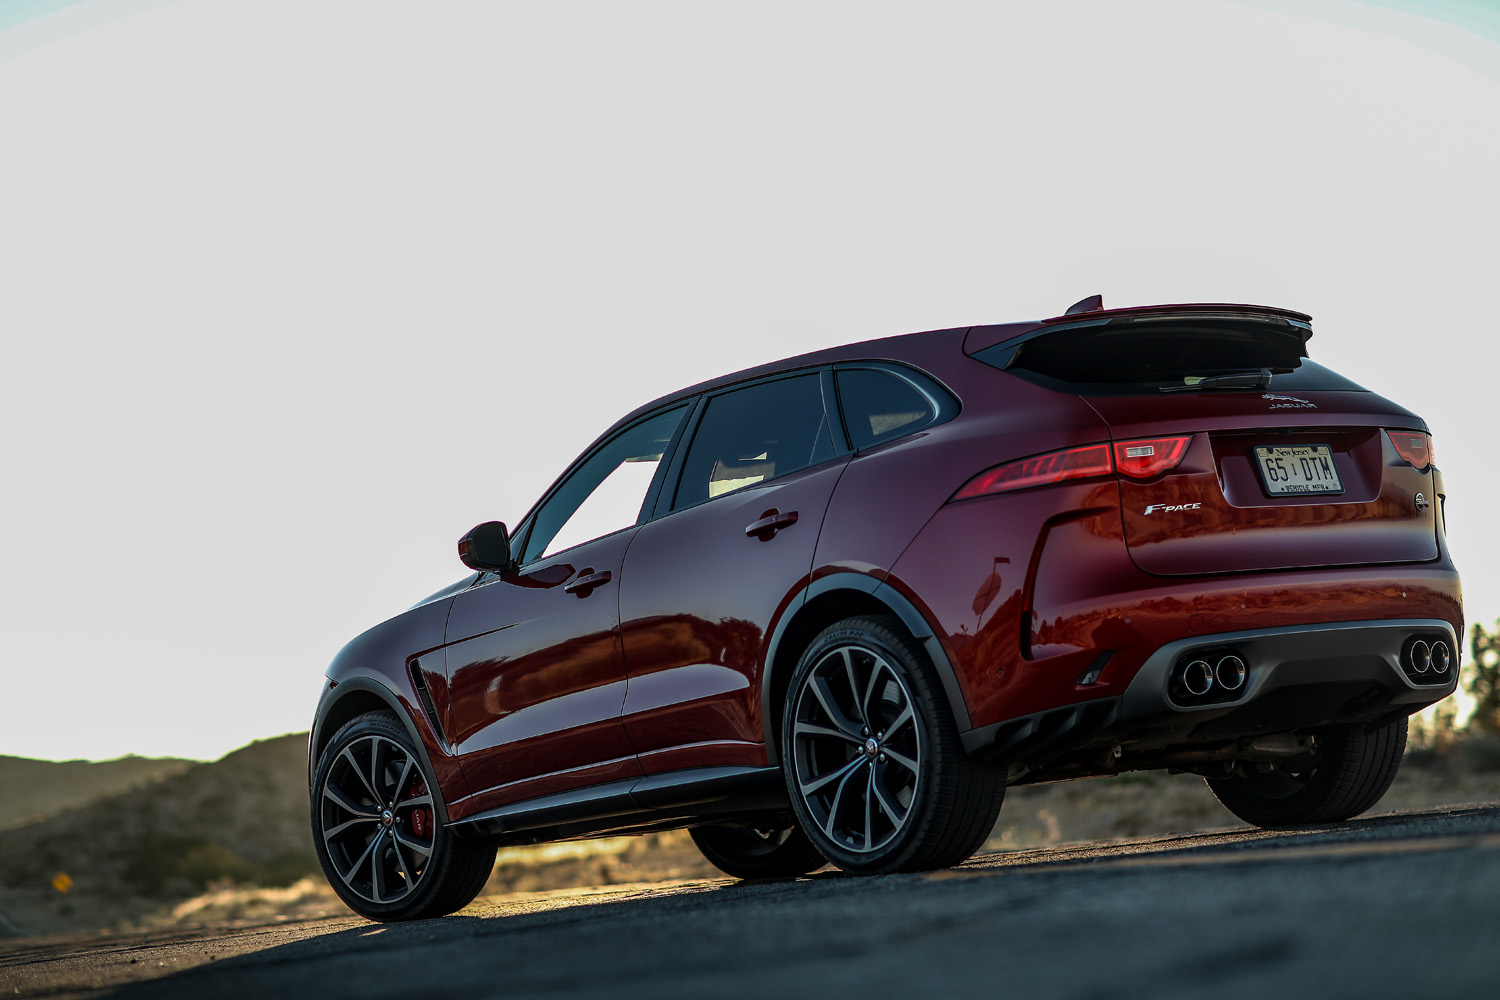 2019 Jaguar F-Pace SVR rear 3/4